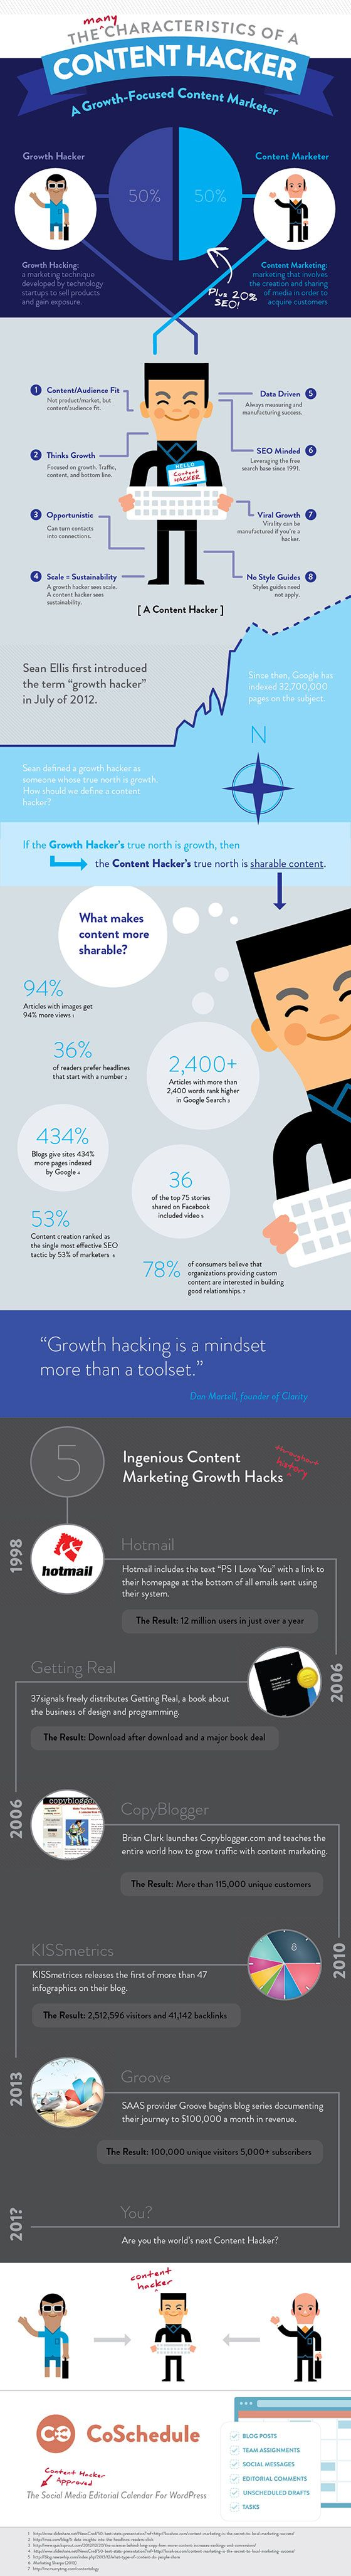 The (Many) Characteristics of a Content Hacker: A Growth-Focused Content Marketer [Infographic]